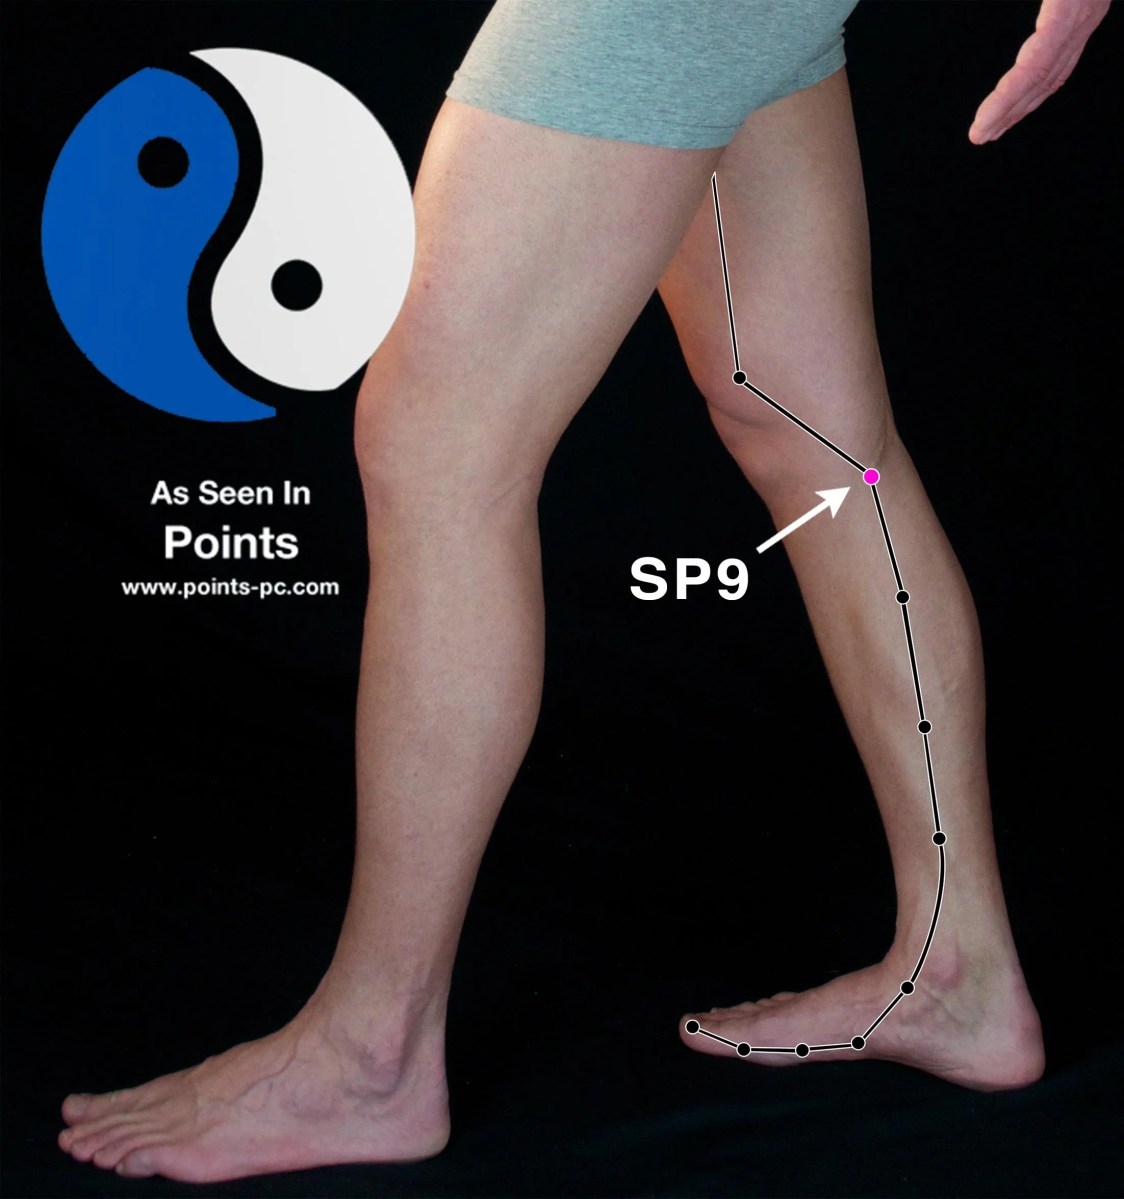 Acupuncture Point: Spleen 9